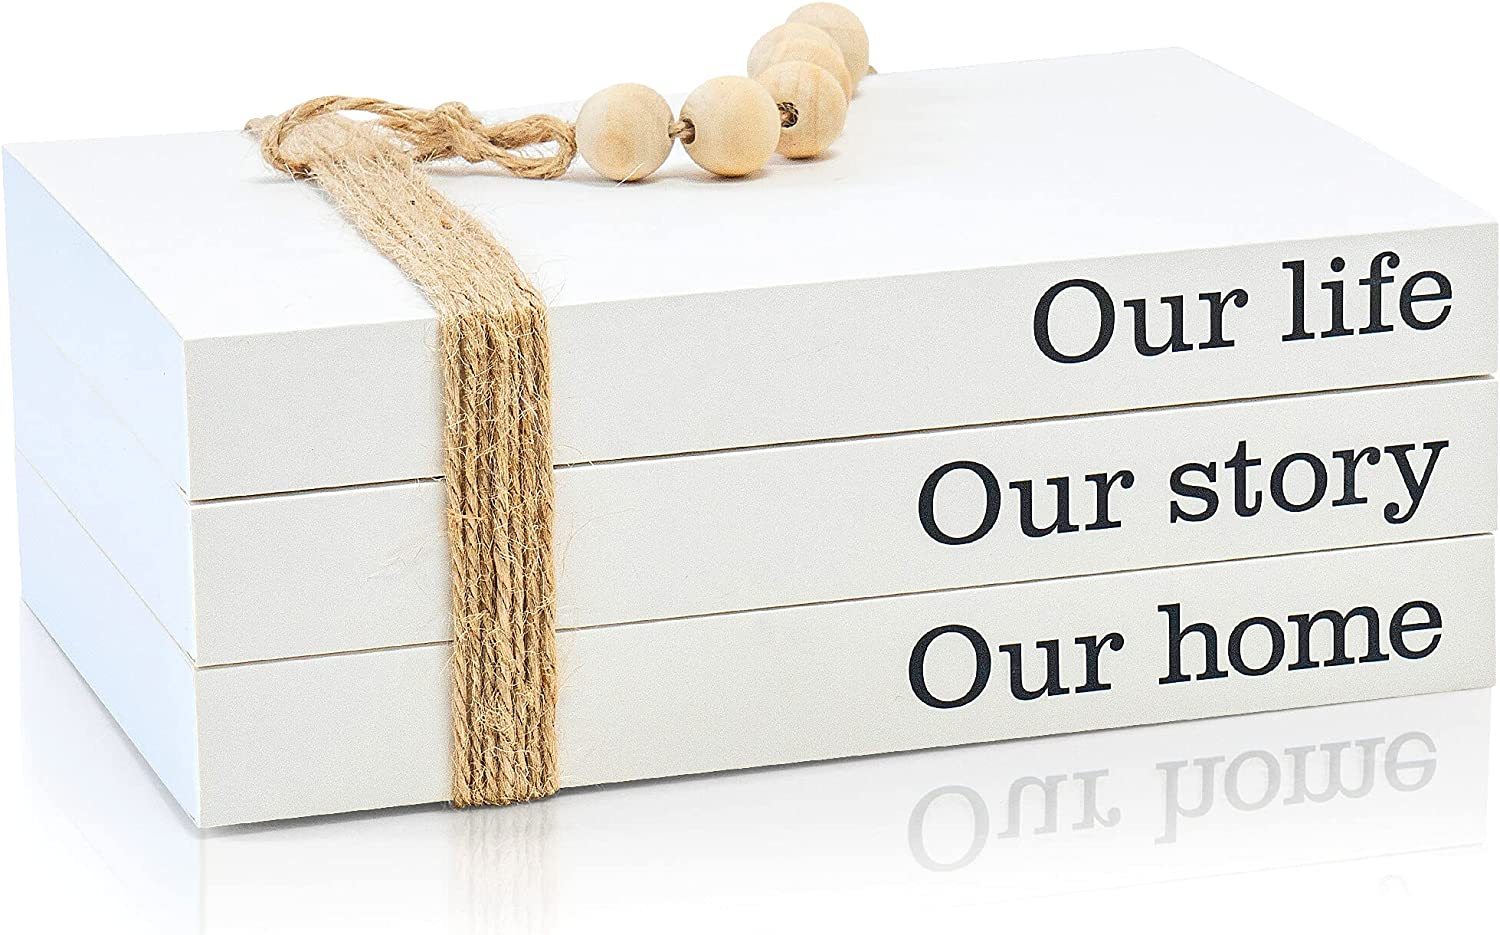 Decorative Books for Home Living Room Decor, Book Shelves, and Coffee Table Decorations with Rustic Jute Twine and Farmhouse Wooden Beads, Stackable Bundle, Set of 3